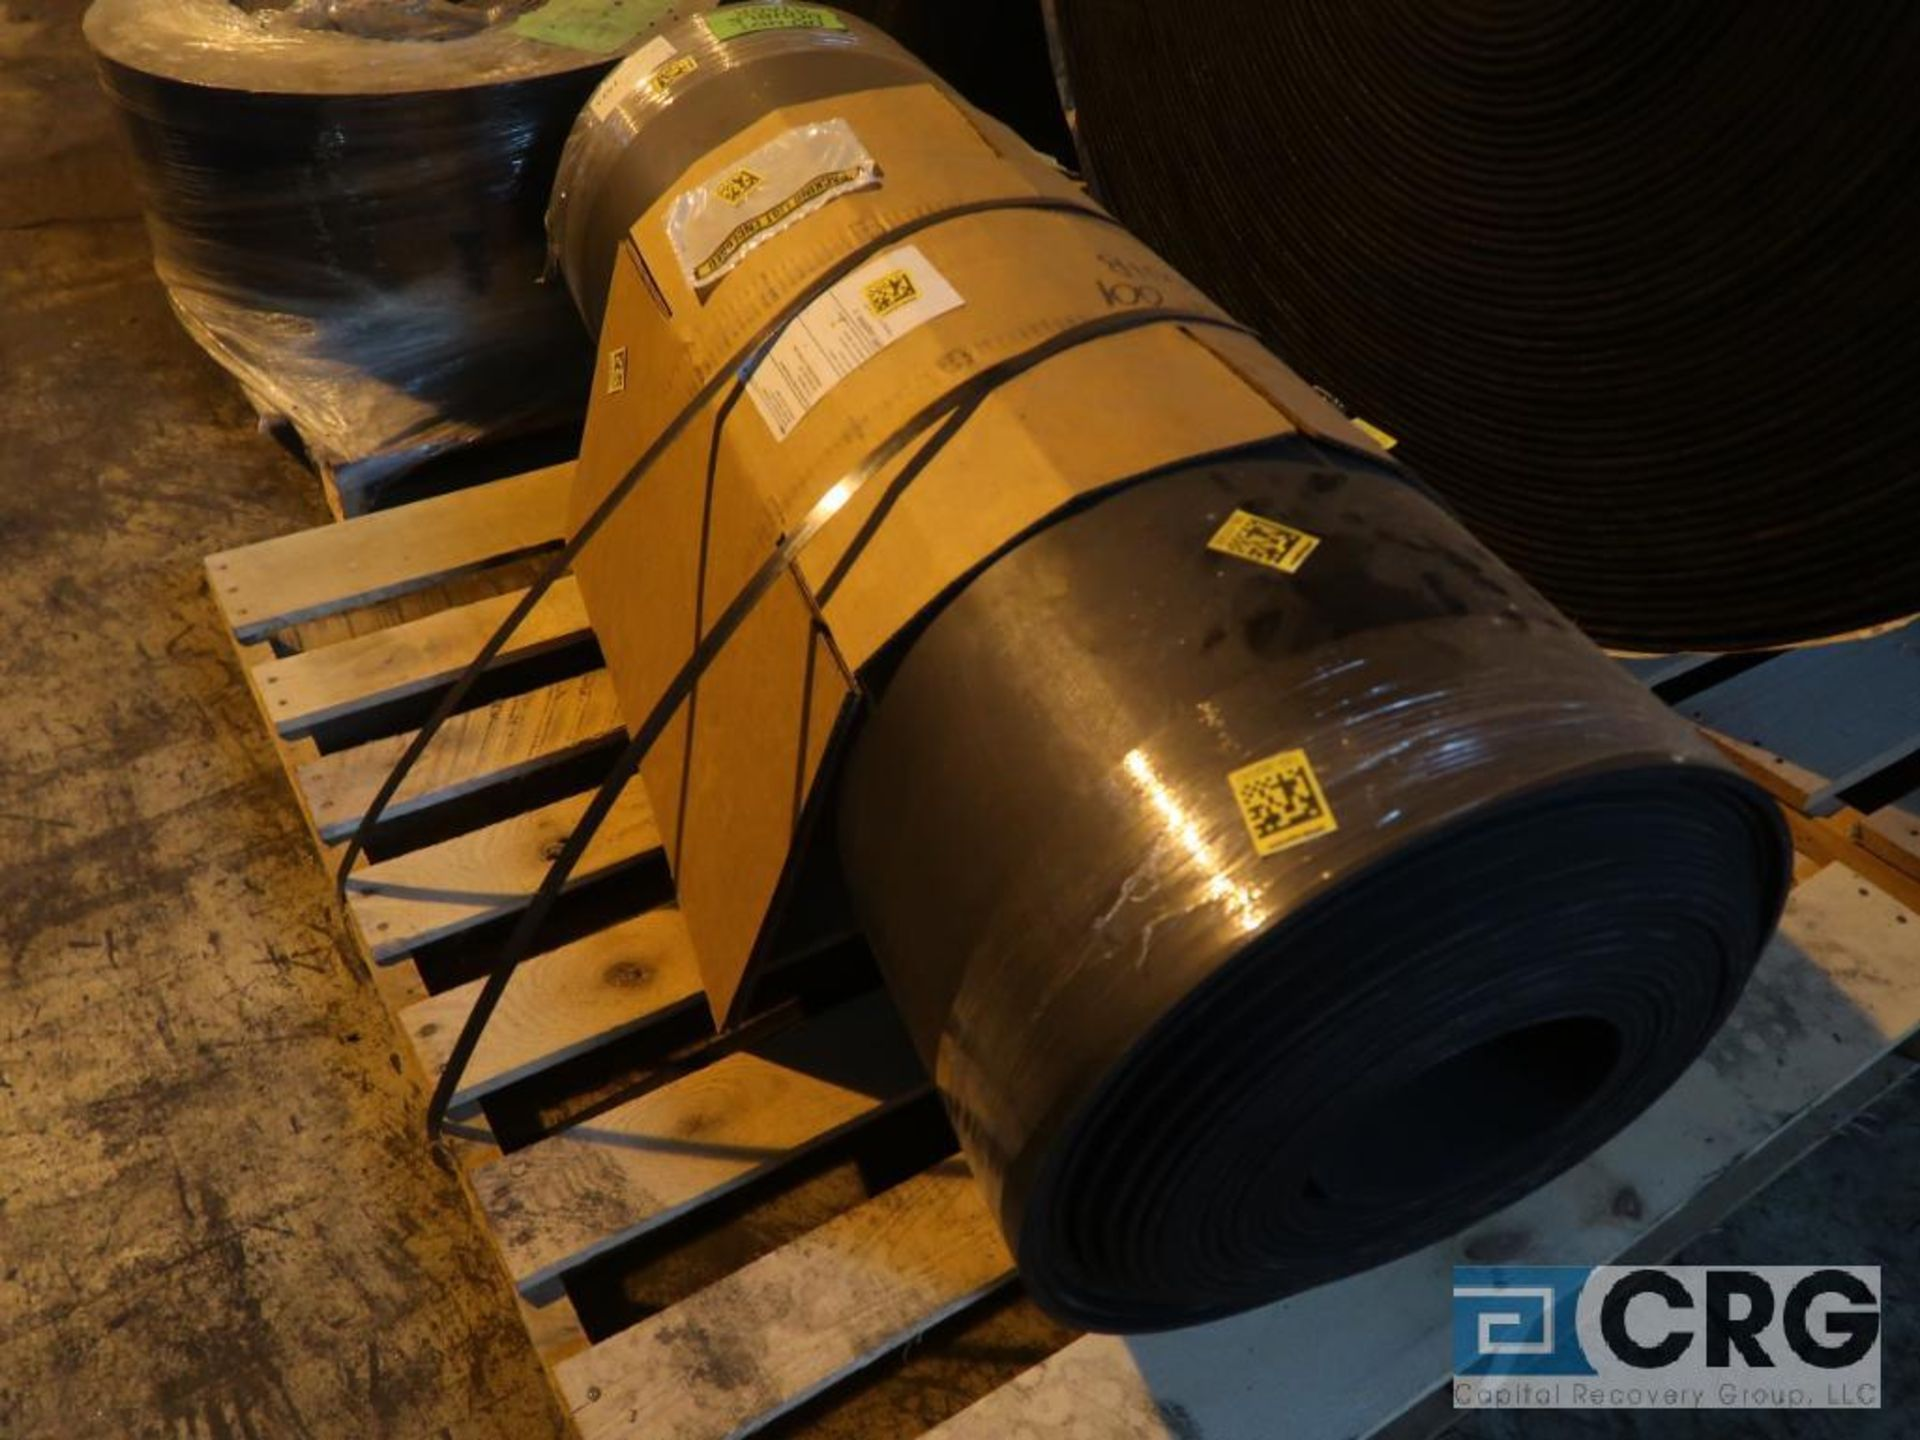 Lot of conveyor parts including belting, pulleys, and rollers (Next Bay Cage Area) - Image 3 of 5